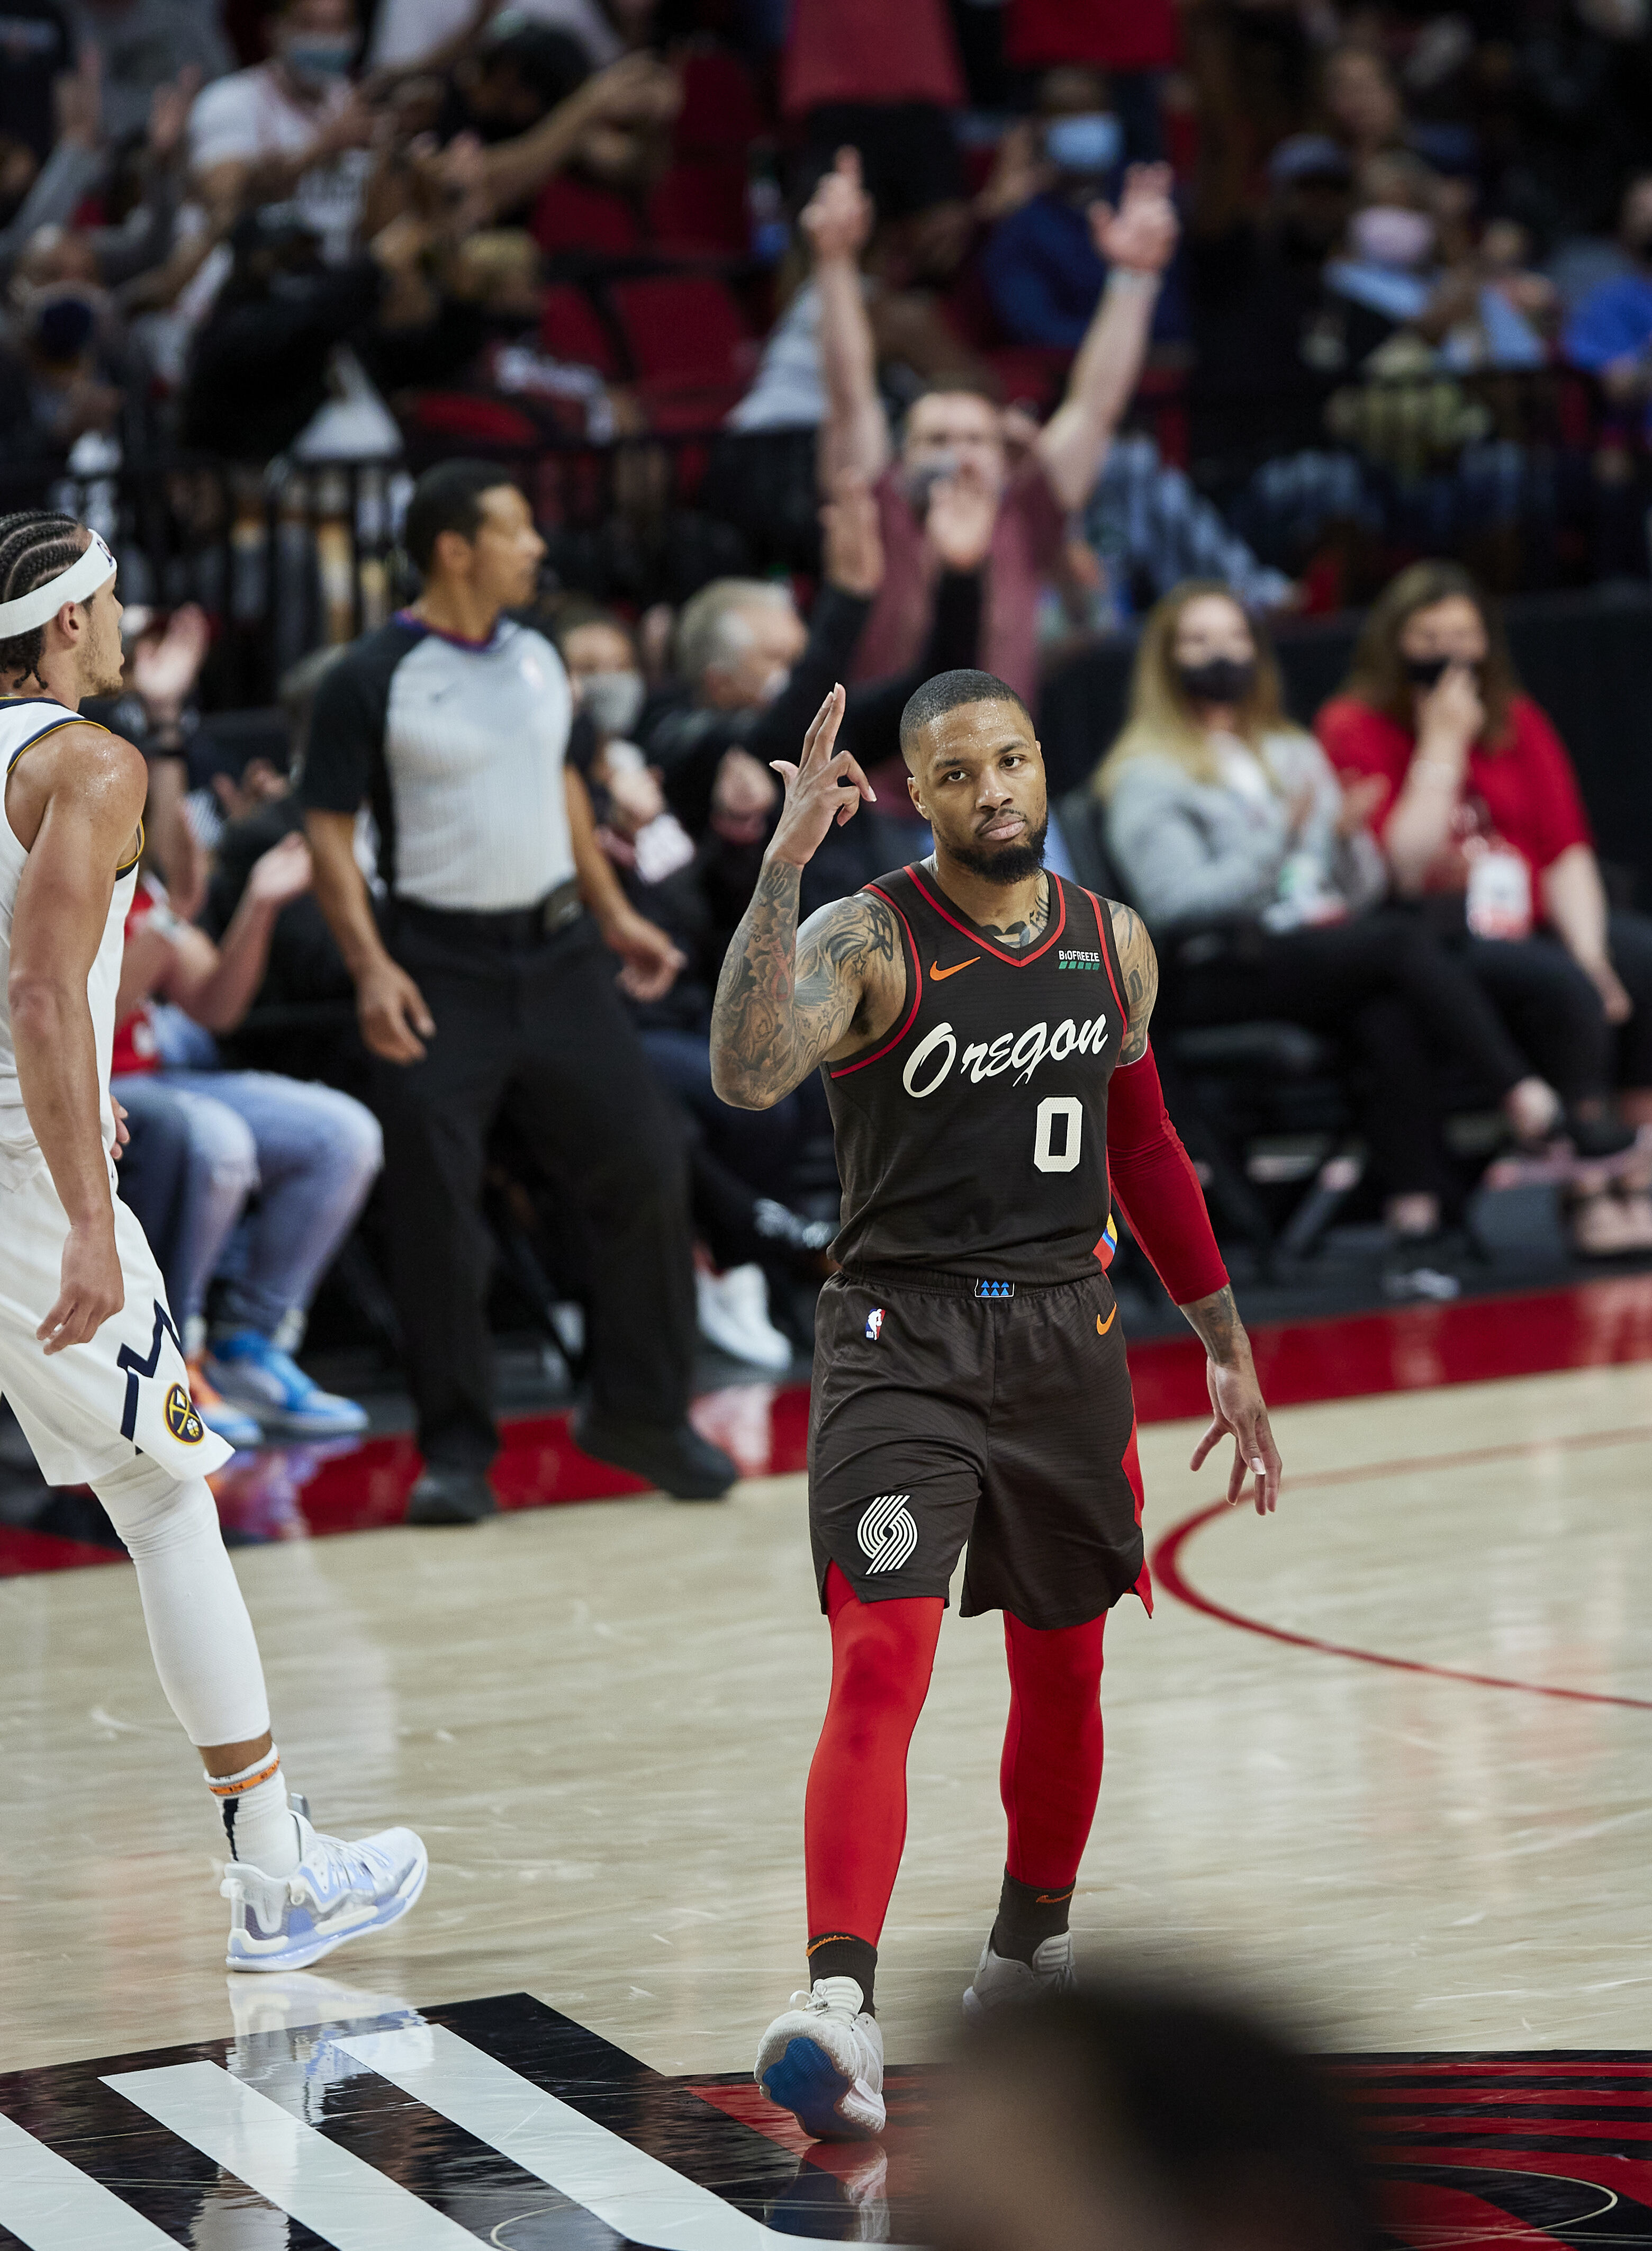 Portland Trail Blazers guard Damian Lillard reacts after making a 3-pointer against the Denver Nuggets in Game 6 of their playoff series.